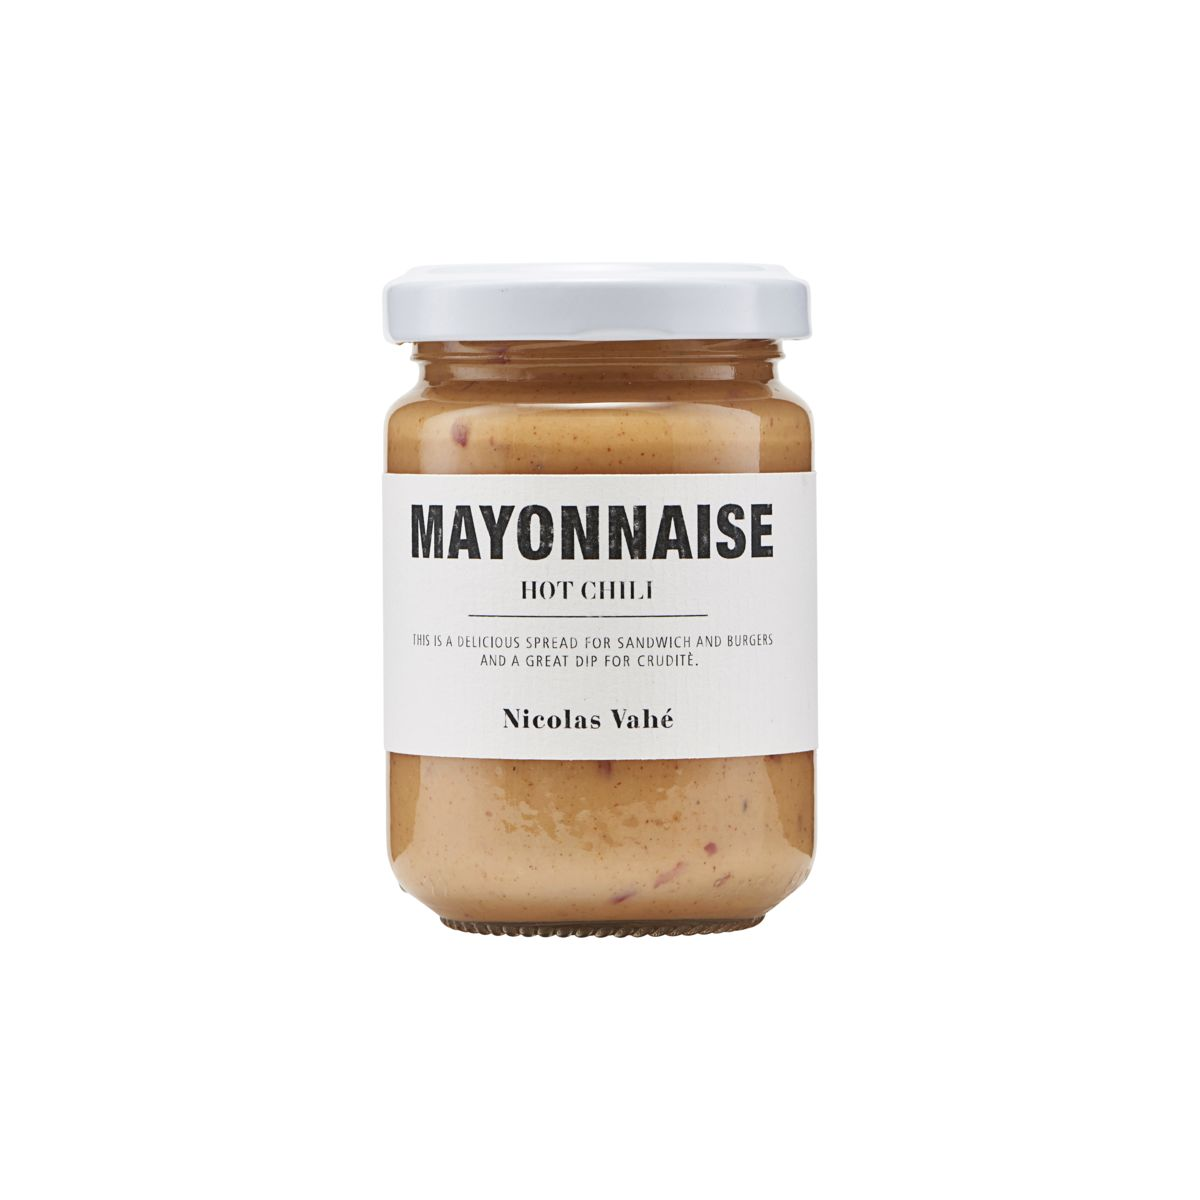 NV mayo hot chili